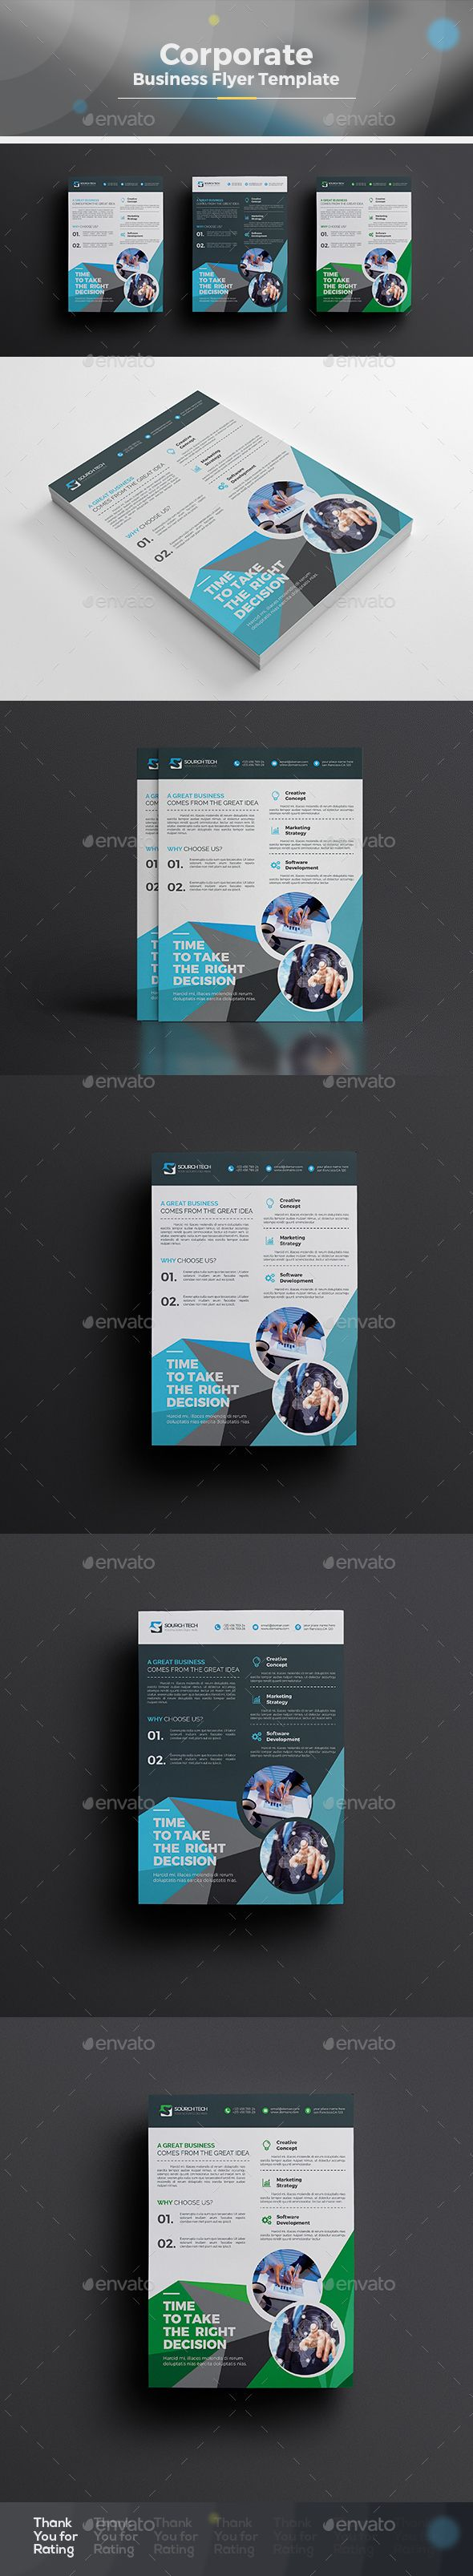 Corporate Flyer  — EPS Template #clean design #creative flyer • Download ➝ https://graphicriver.net/item/corporate-flyer/18473437?ref=pxcr